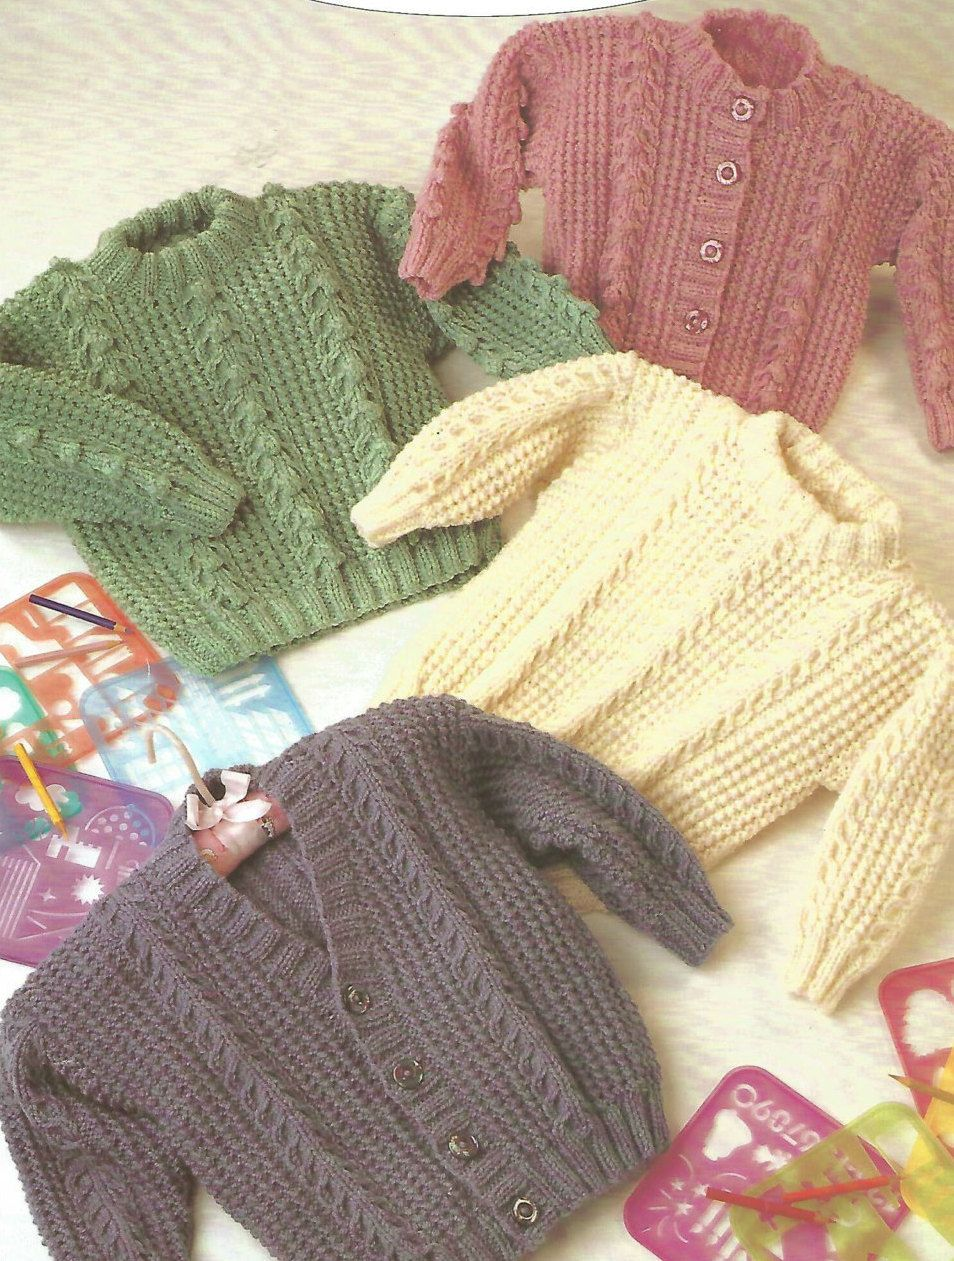 Knitting In The Round Sweater Patterns : Knitting pattern babies children s aran fisherman ply